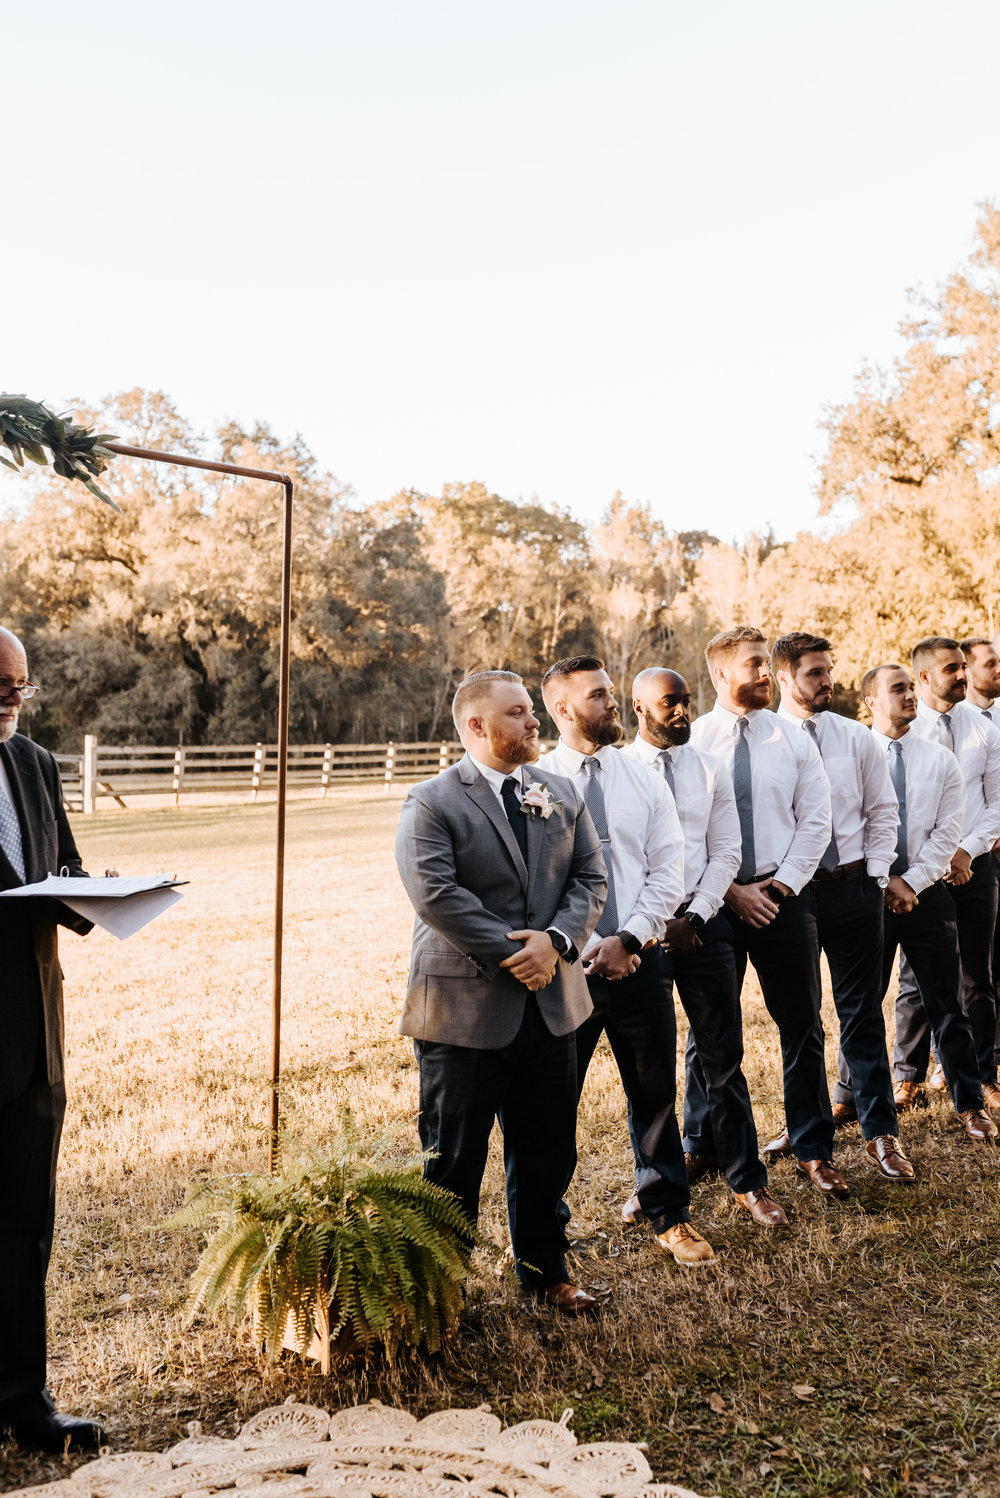 Morgan-Brandon-Wedding-All-4-One-Farms-Jacksonville-Florida-Photographer-Photography-by-V-6606.jpg